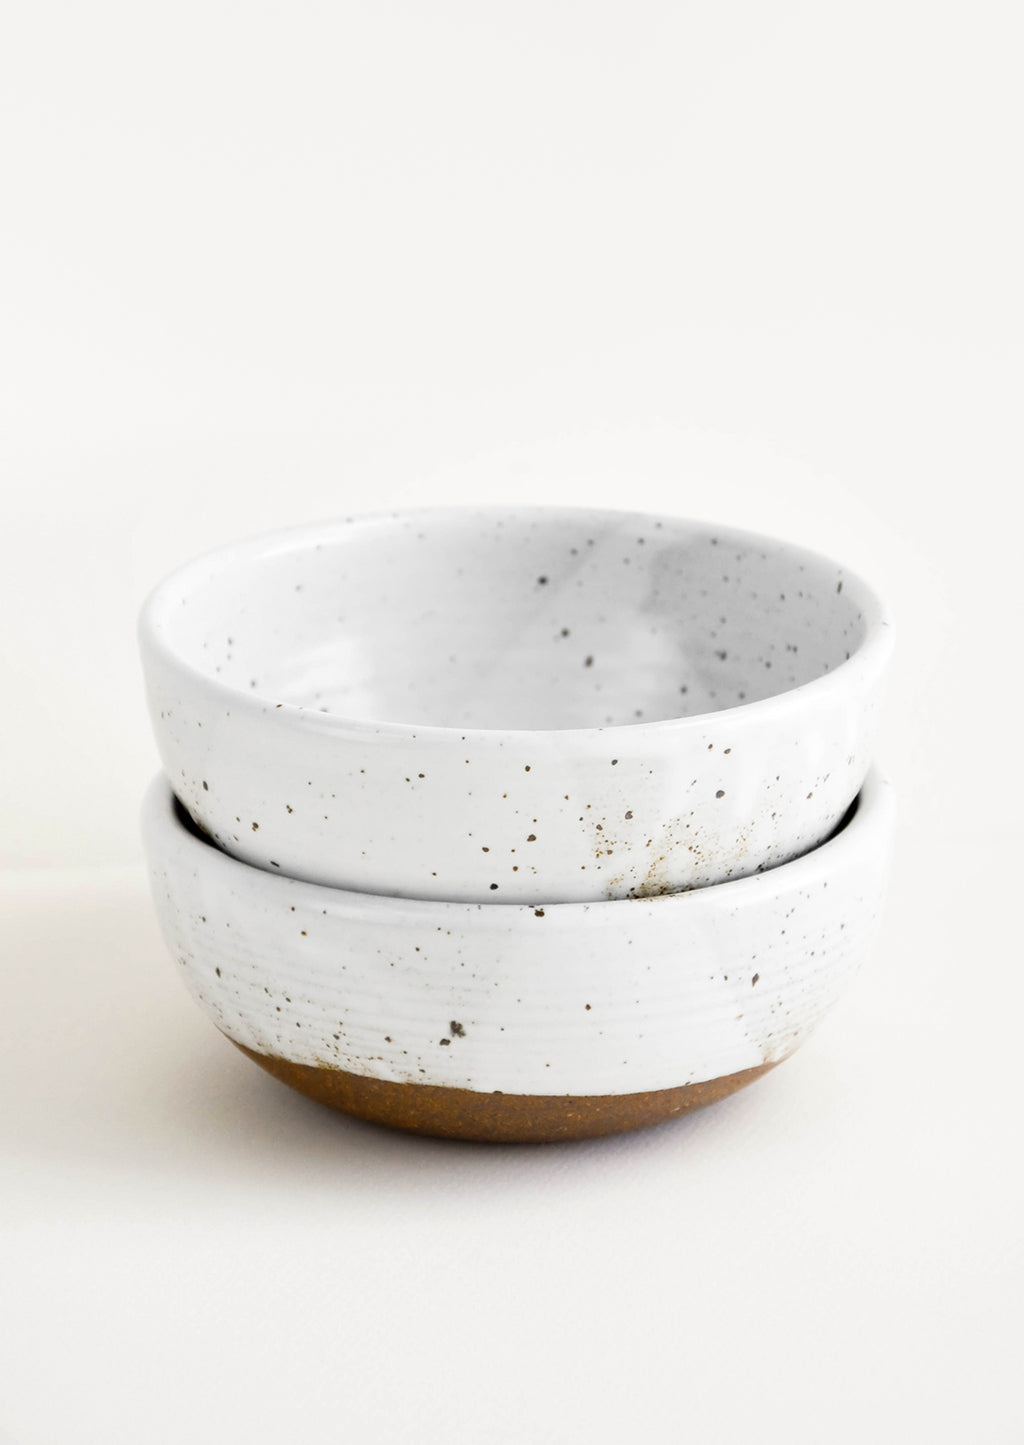 Glossy White / Soup: Two stacked white ceramic bowls with brown speckles.